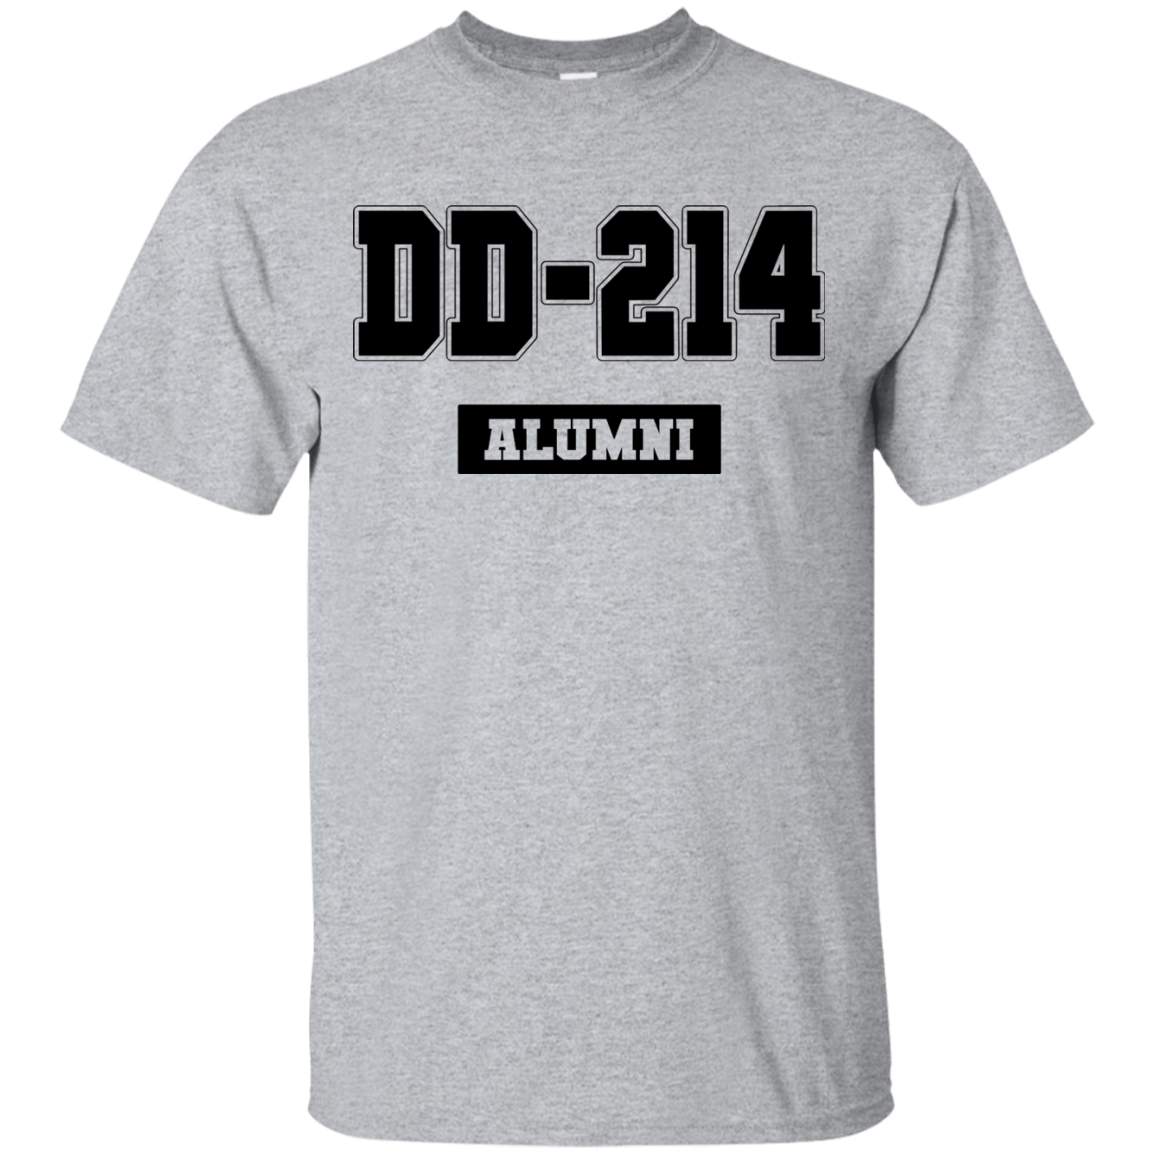 Image result for dd 214 alumni shirt""